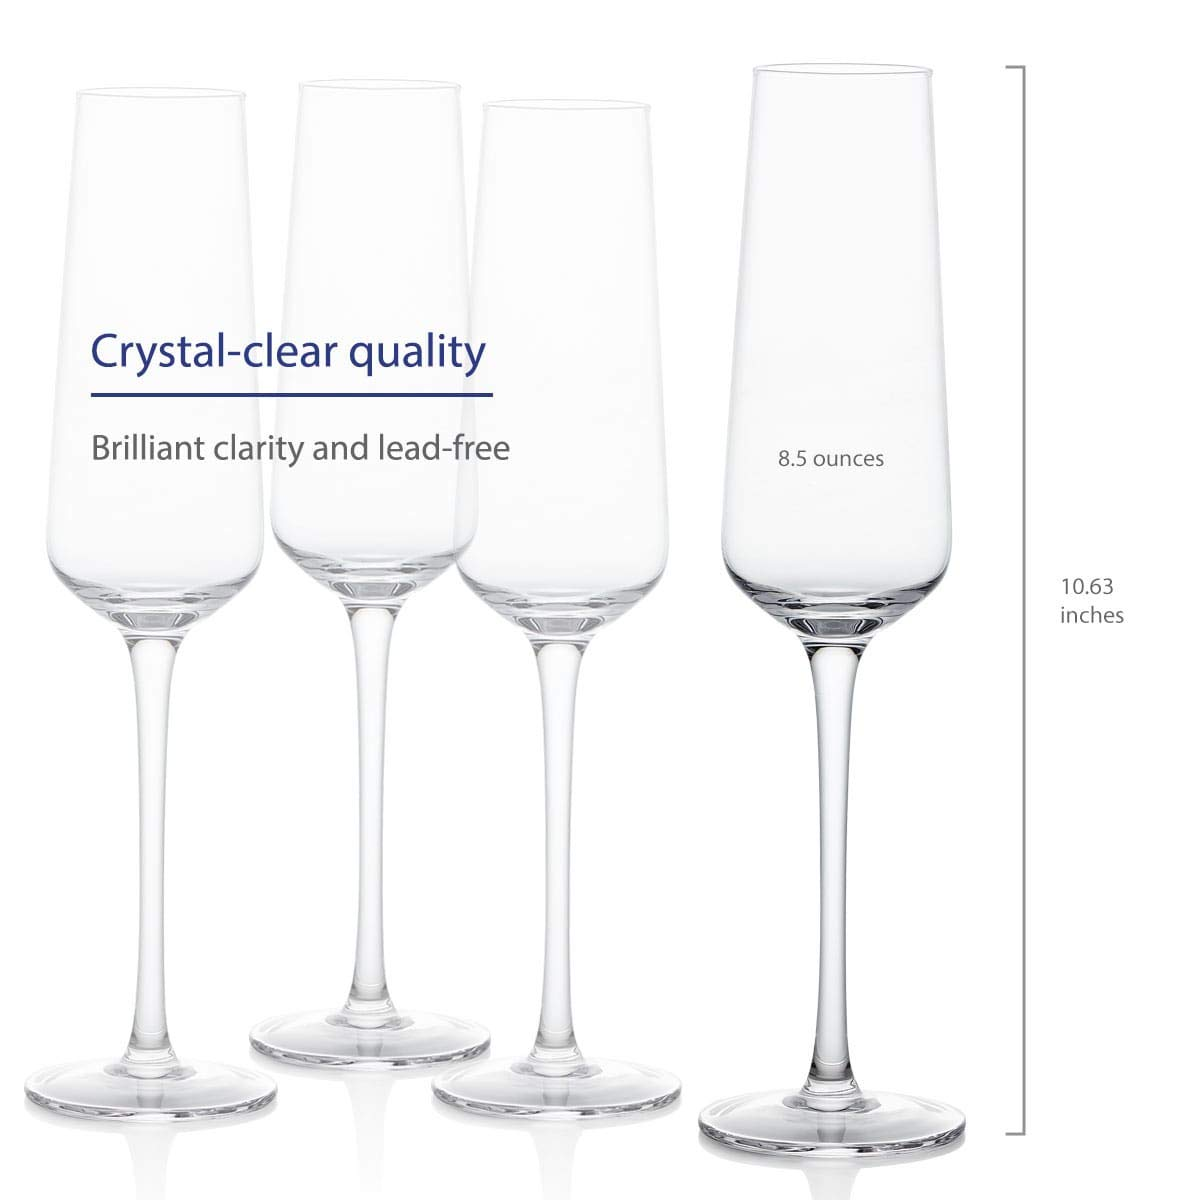 GoodGlassware Champagne Flutes (Set Of 4) 8.5 oz - Crystal Clear Clarity, Classic and Seamless Tower Design - Lead Free Glass, Dishwasher Safe, Quality Sparkling Wine Stemware Set by Vintorio (Image #2)